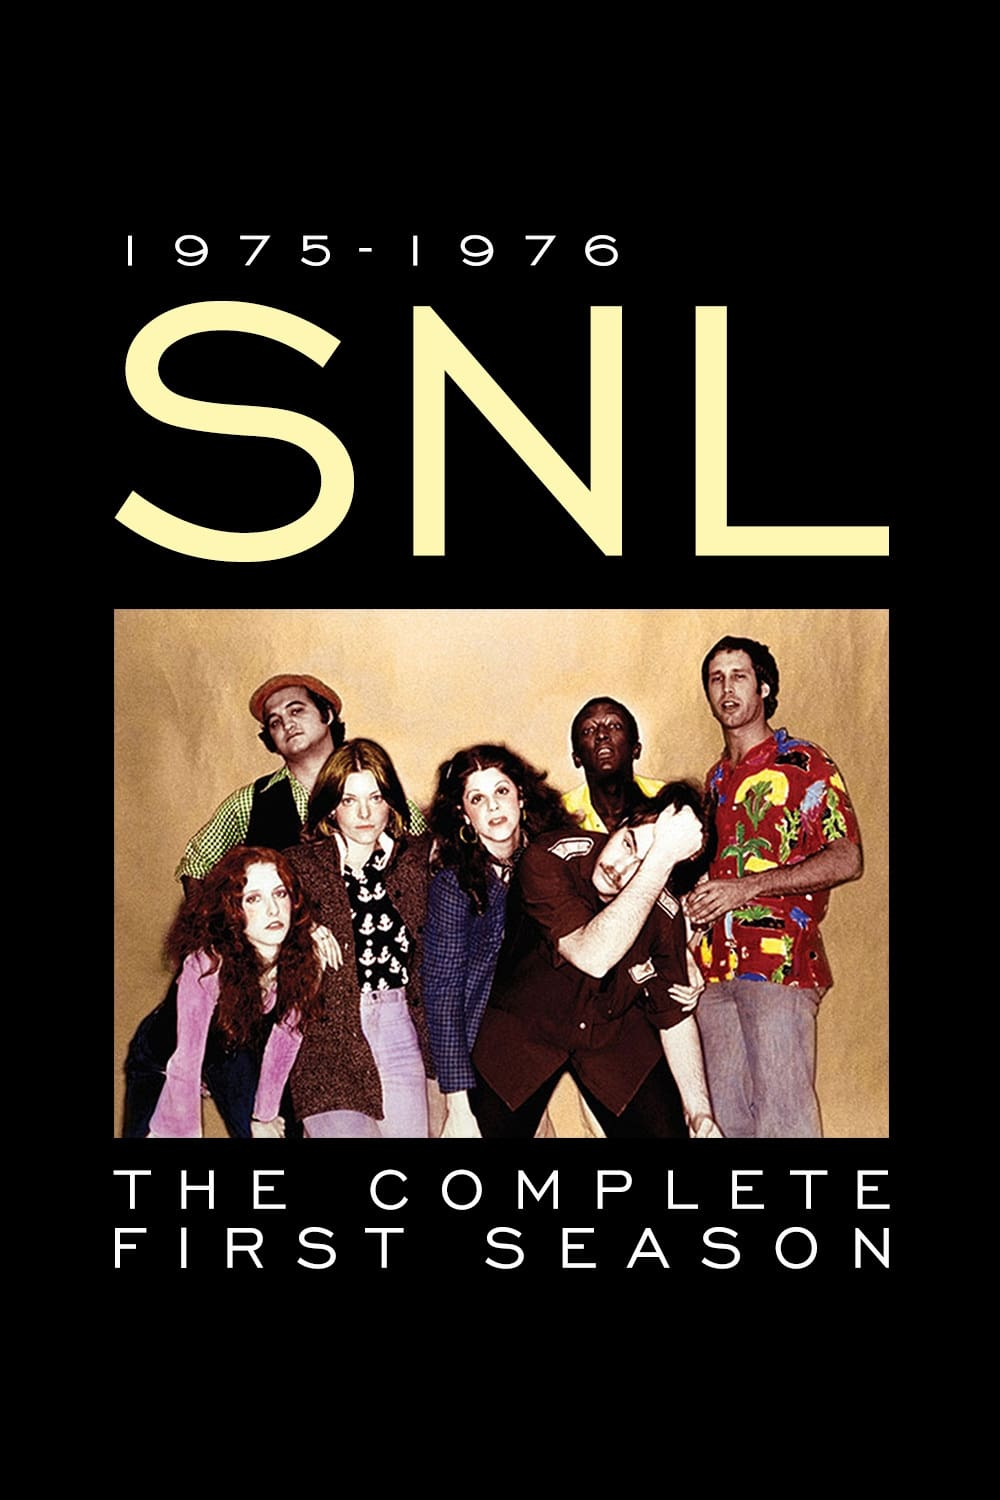 Saturday Night Live Season 1